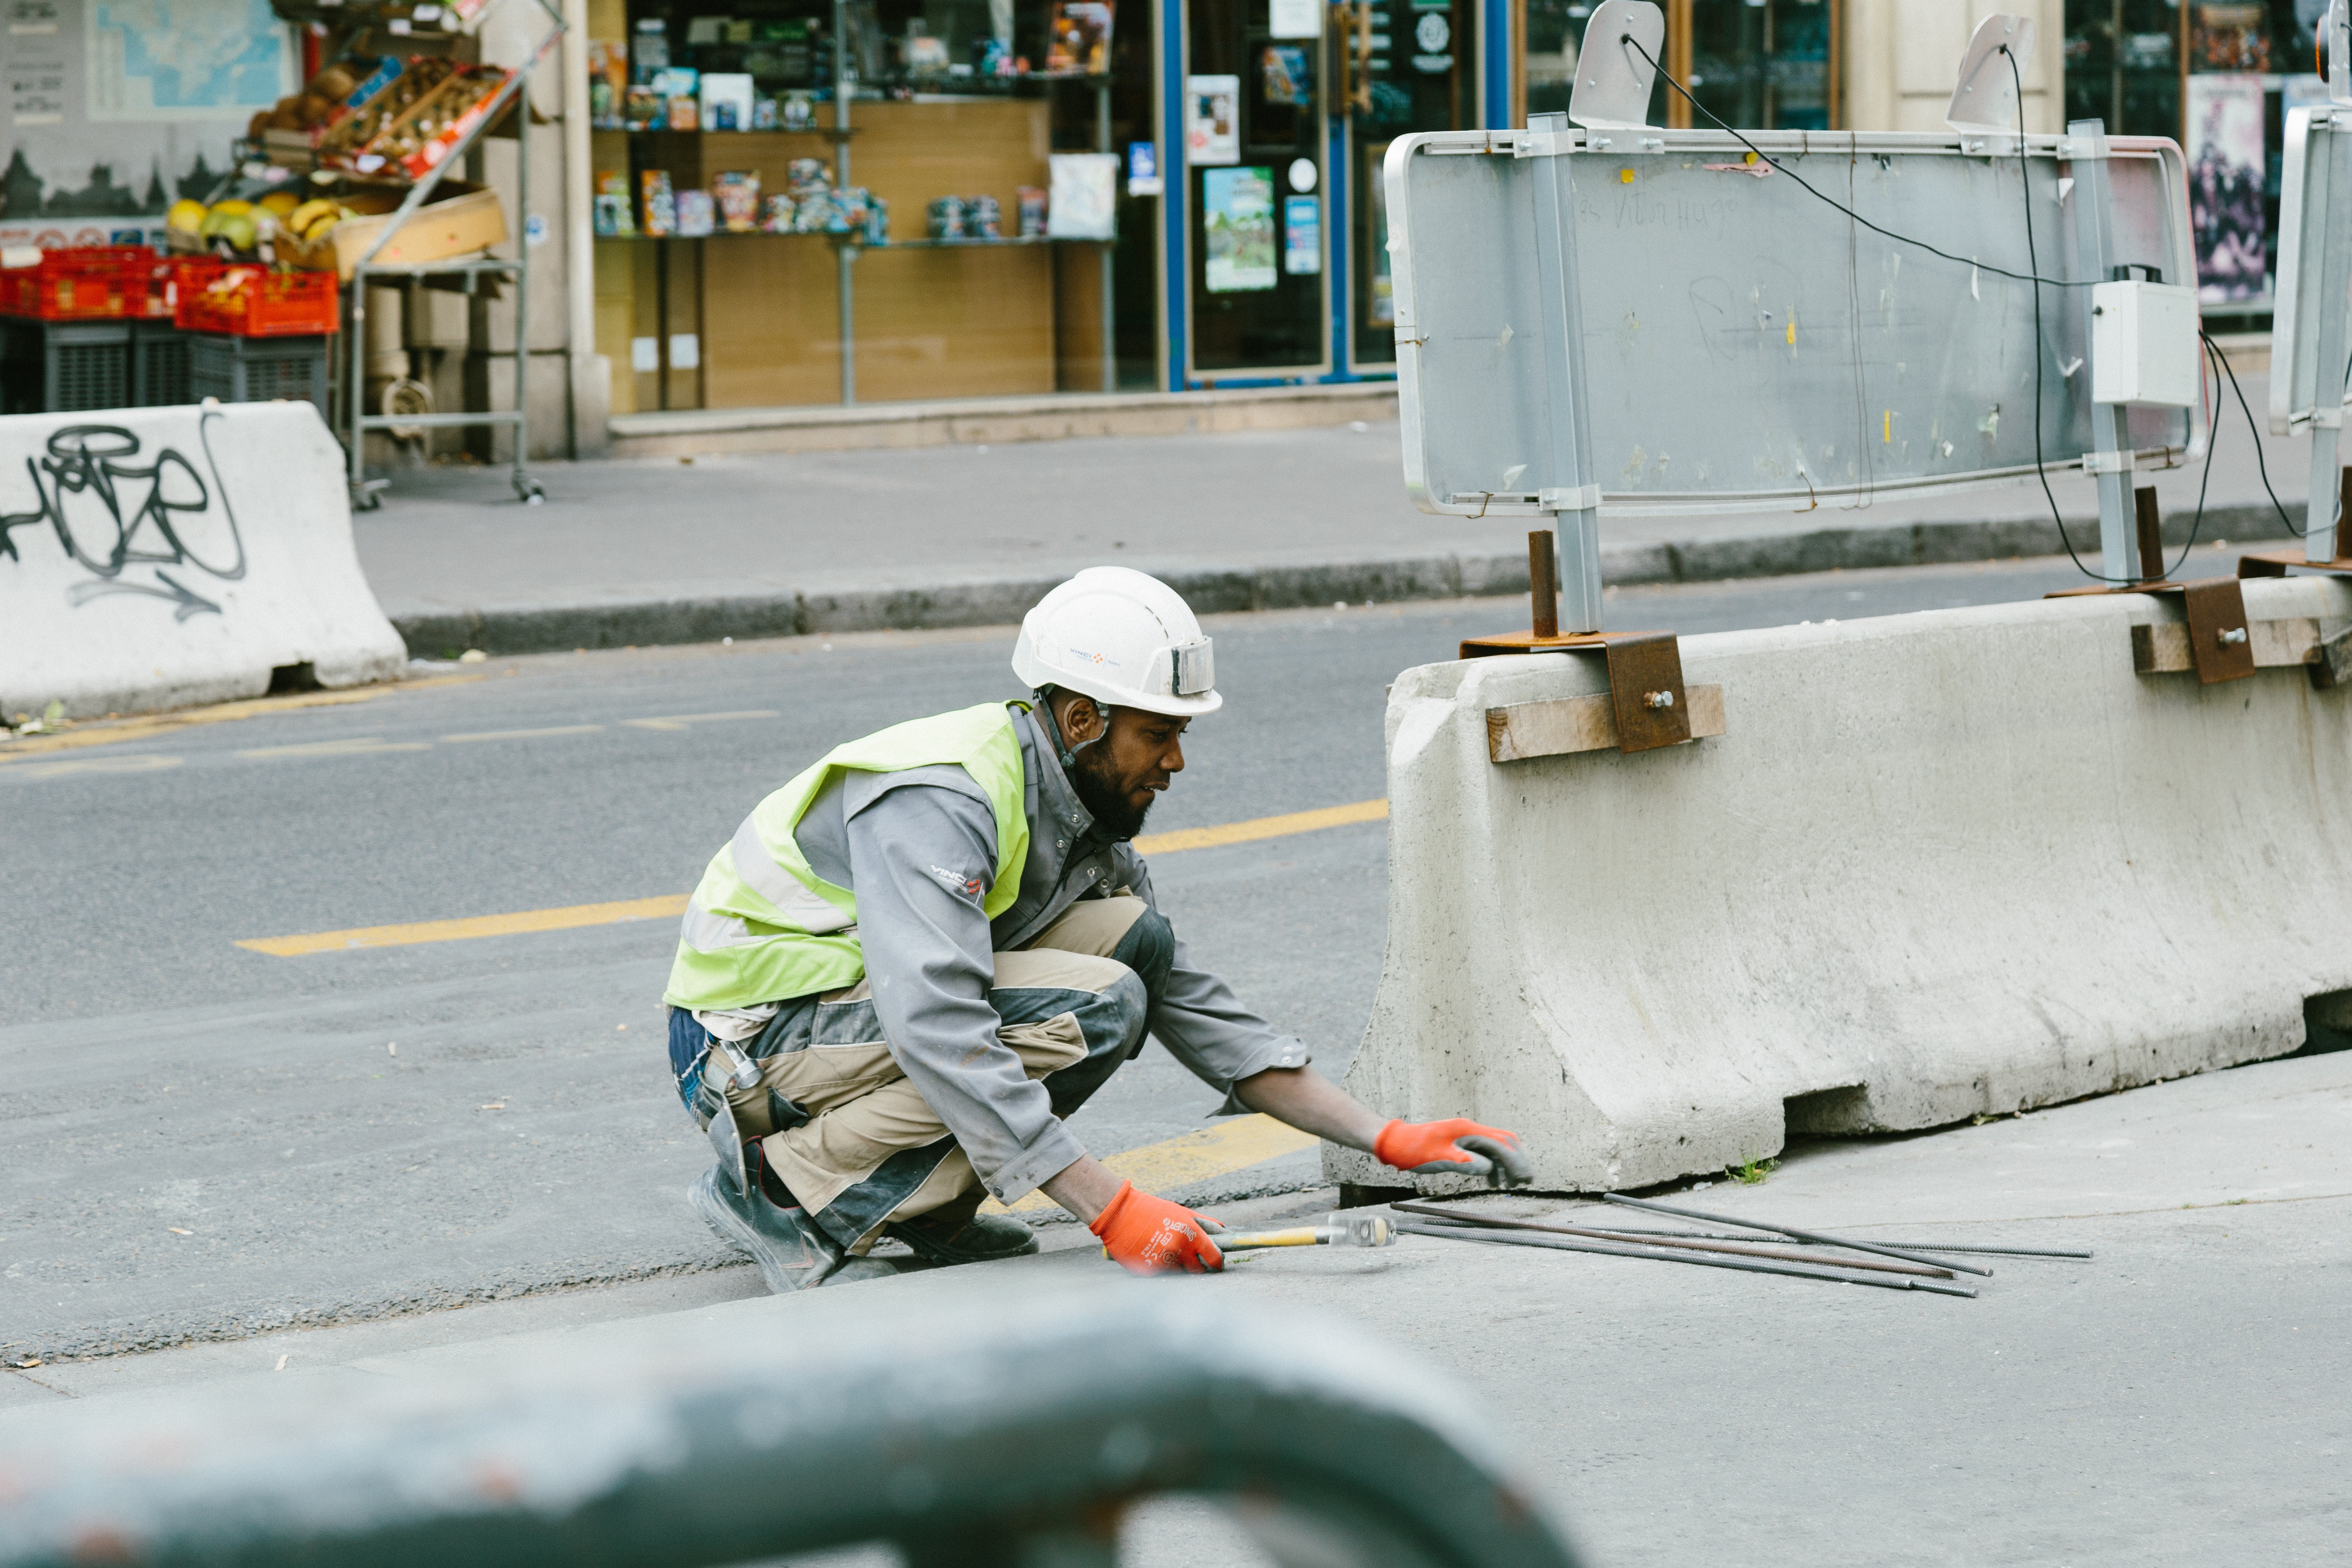 When Drivers And Road Workers Work Together To Prevent Road Construction Accidents